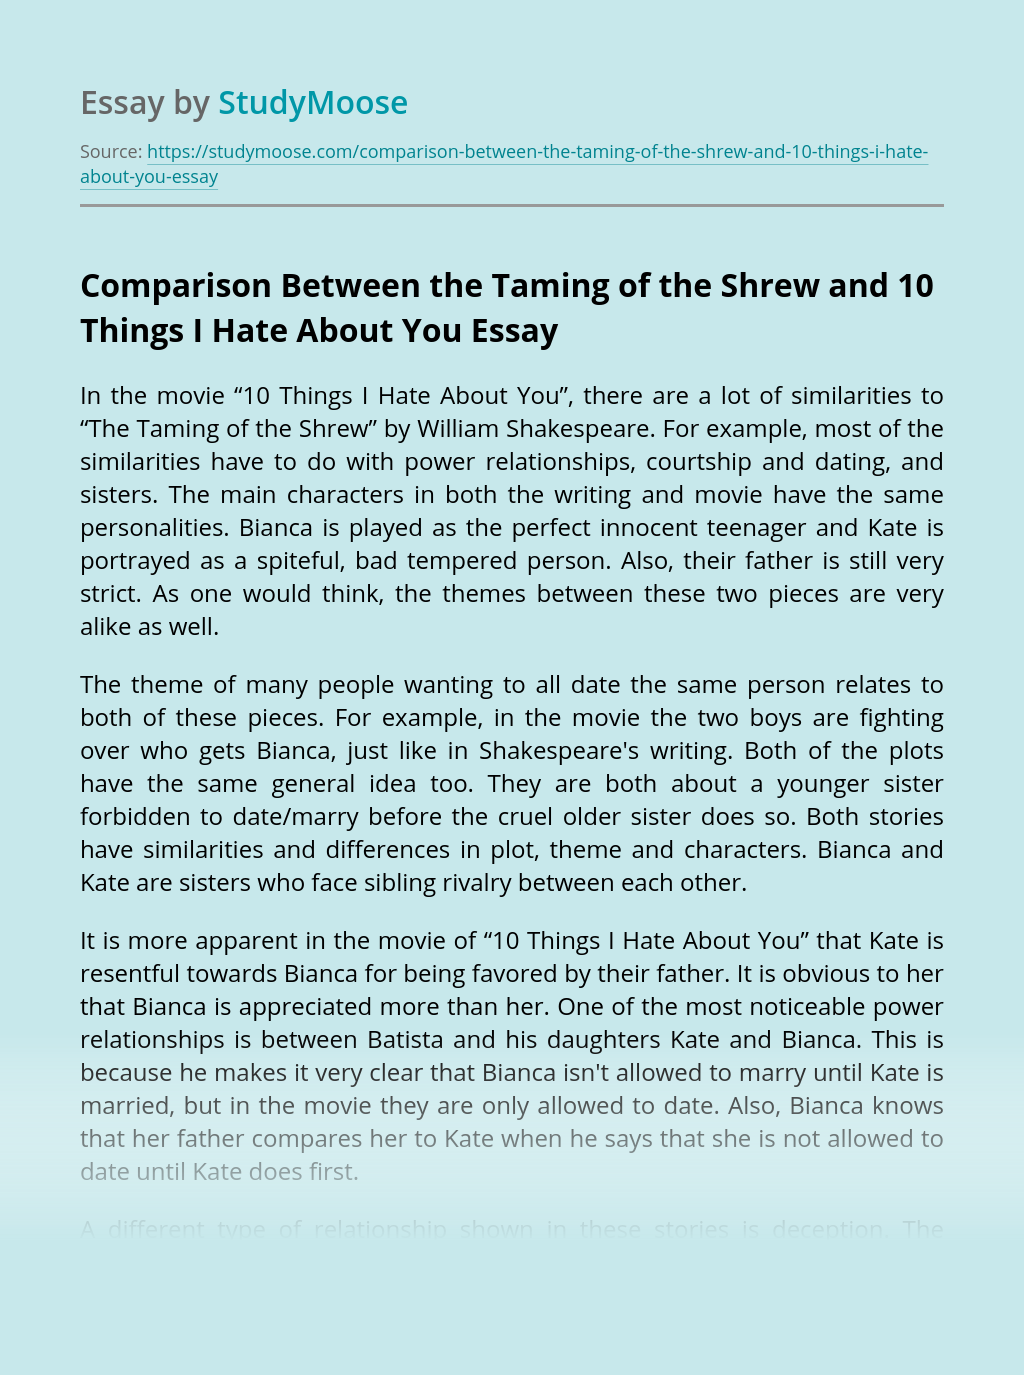 Comparison Between the Taming of the Shrew and 10 Things I Hate About You